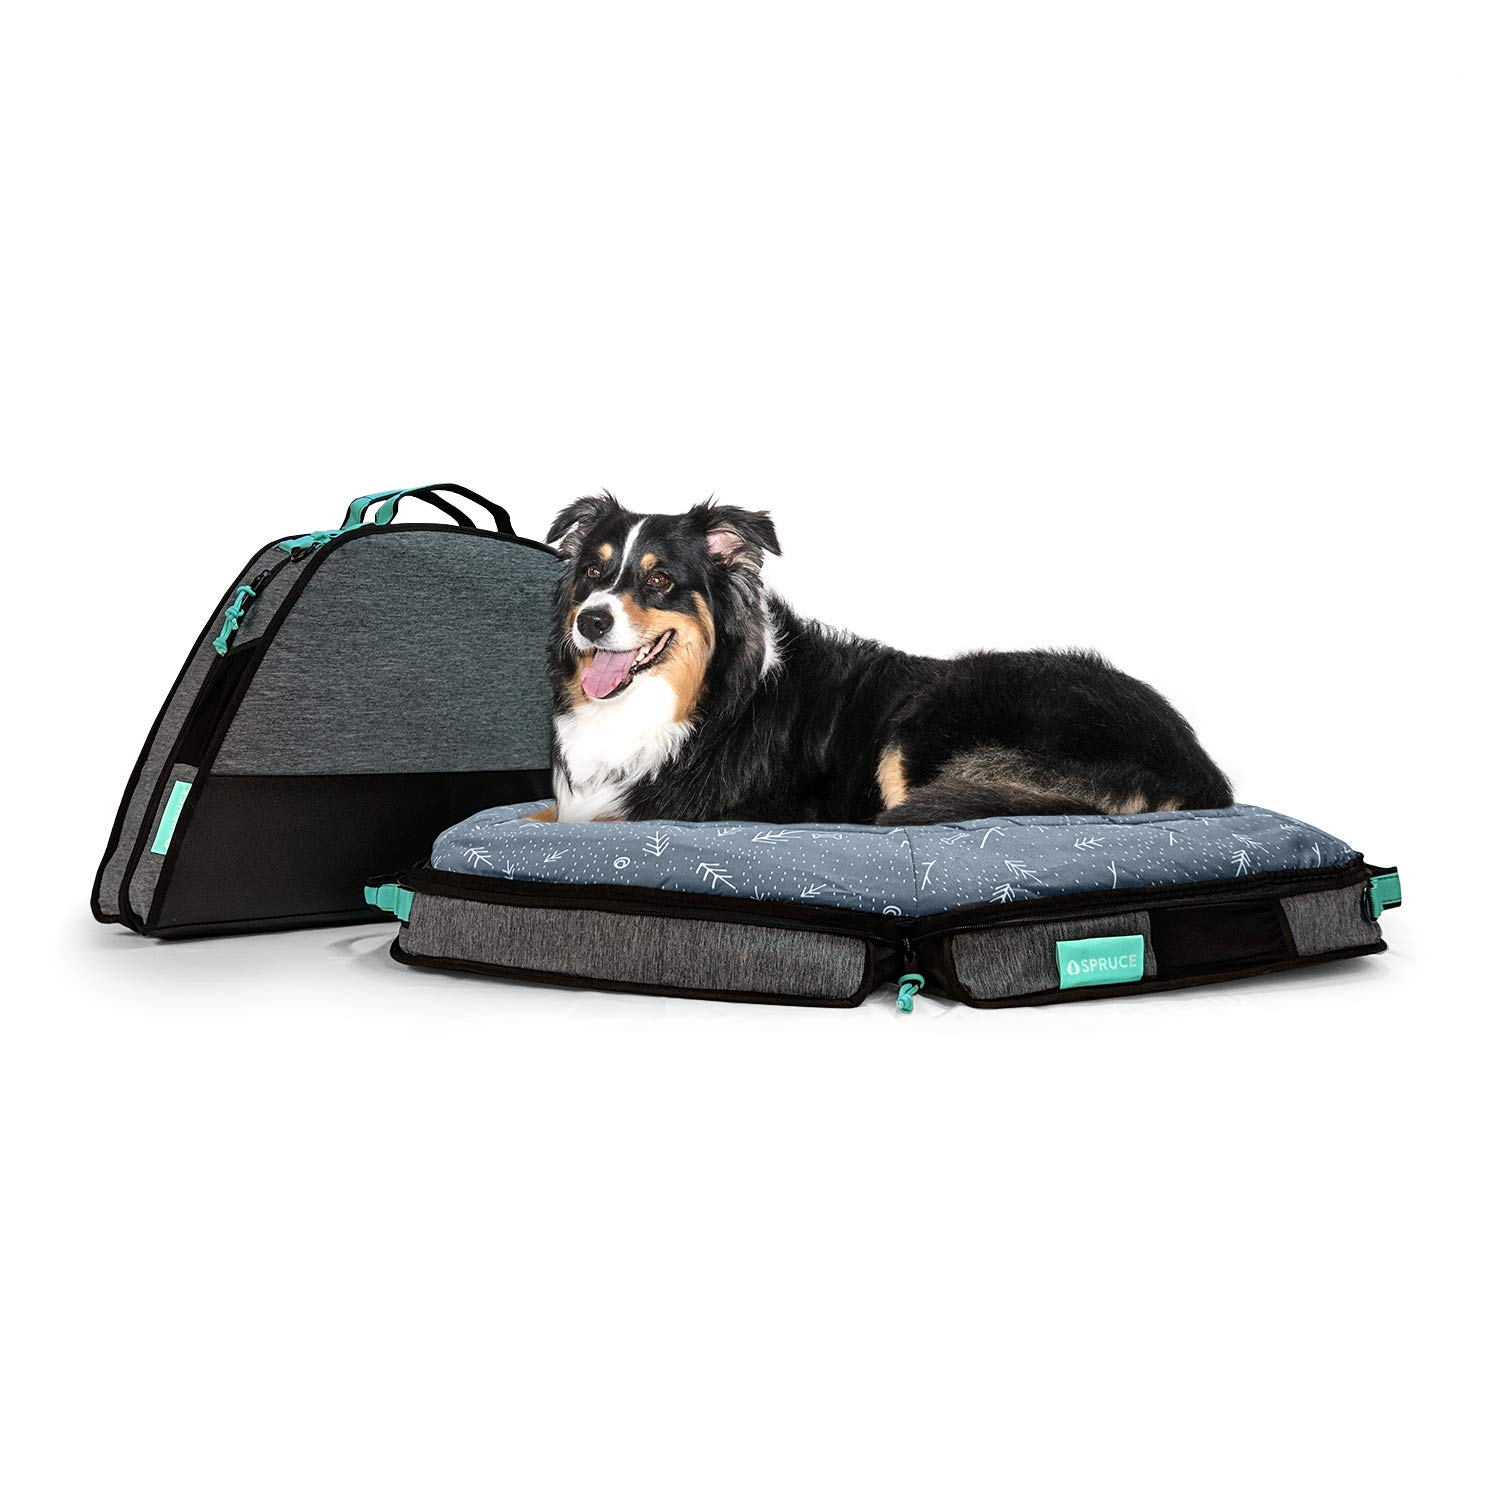 Spruce Pup Indoor/Outdoor Travel Dog Pet Bed - with Foldable, Supportive Foam & Removable Machine Washable Waterproof Fitted Soft Faux-Suede Quilted Sheets, Small Medium Large Sizes